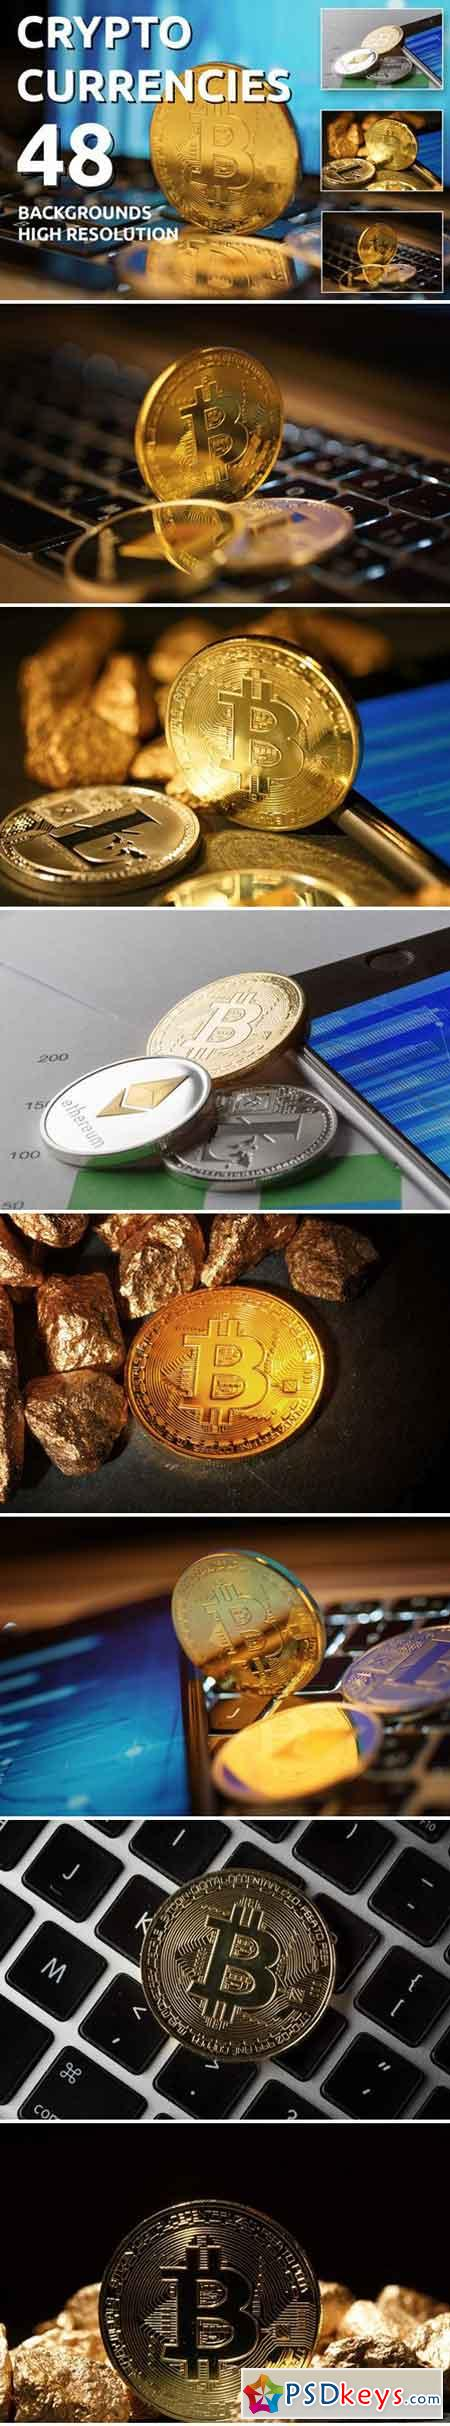 Crypto Currencies 48 Background 57770